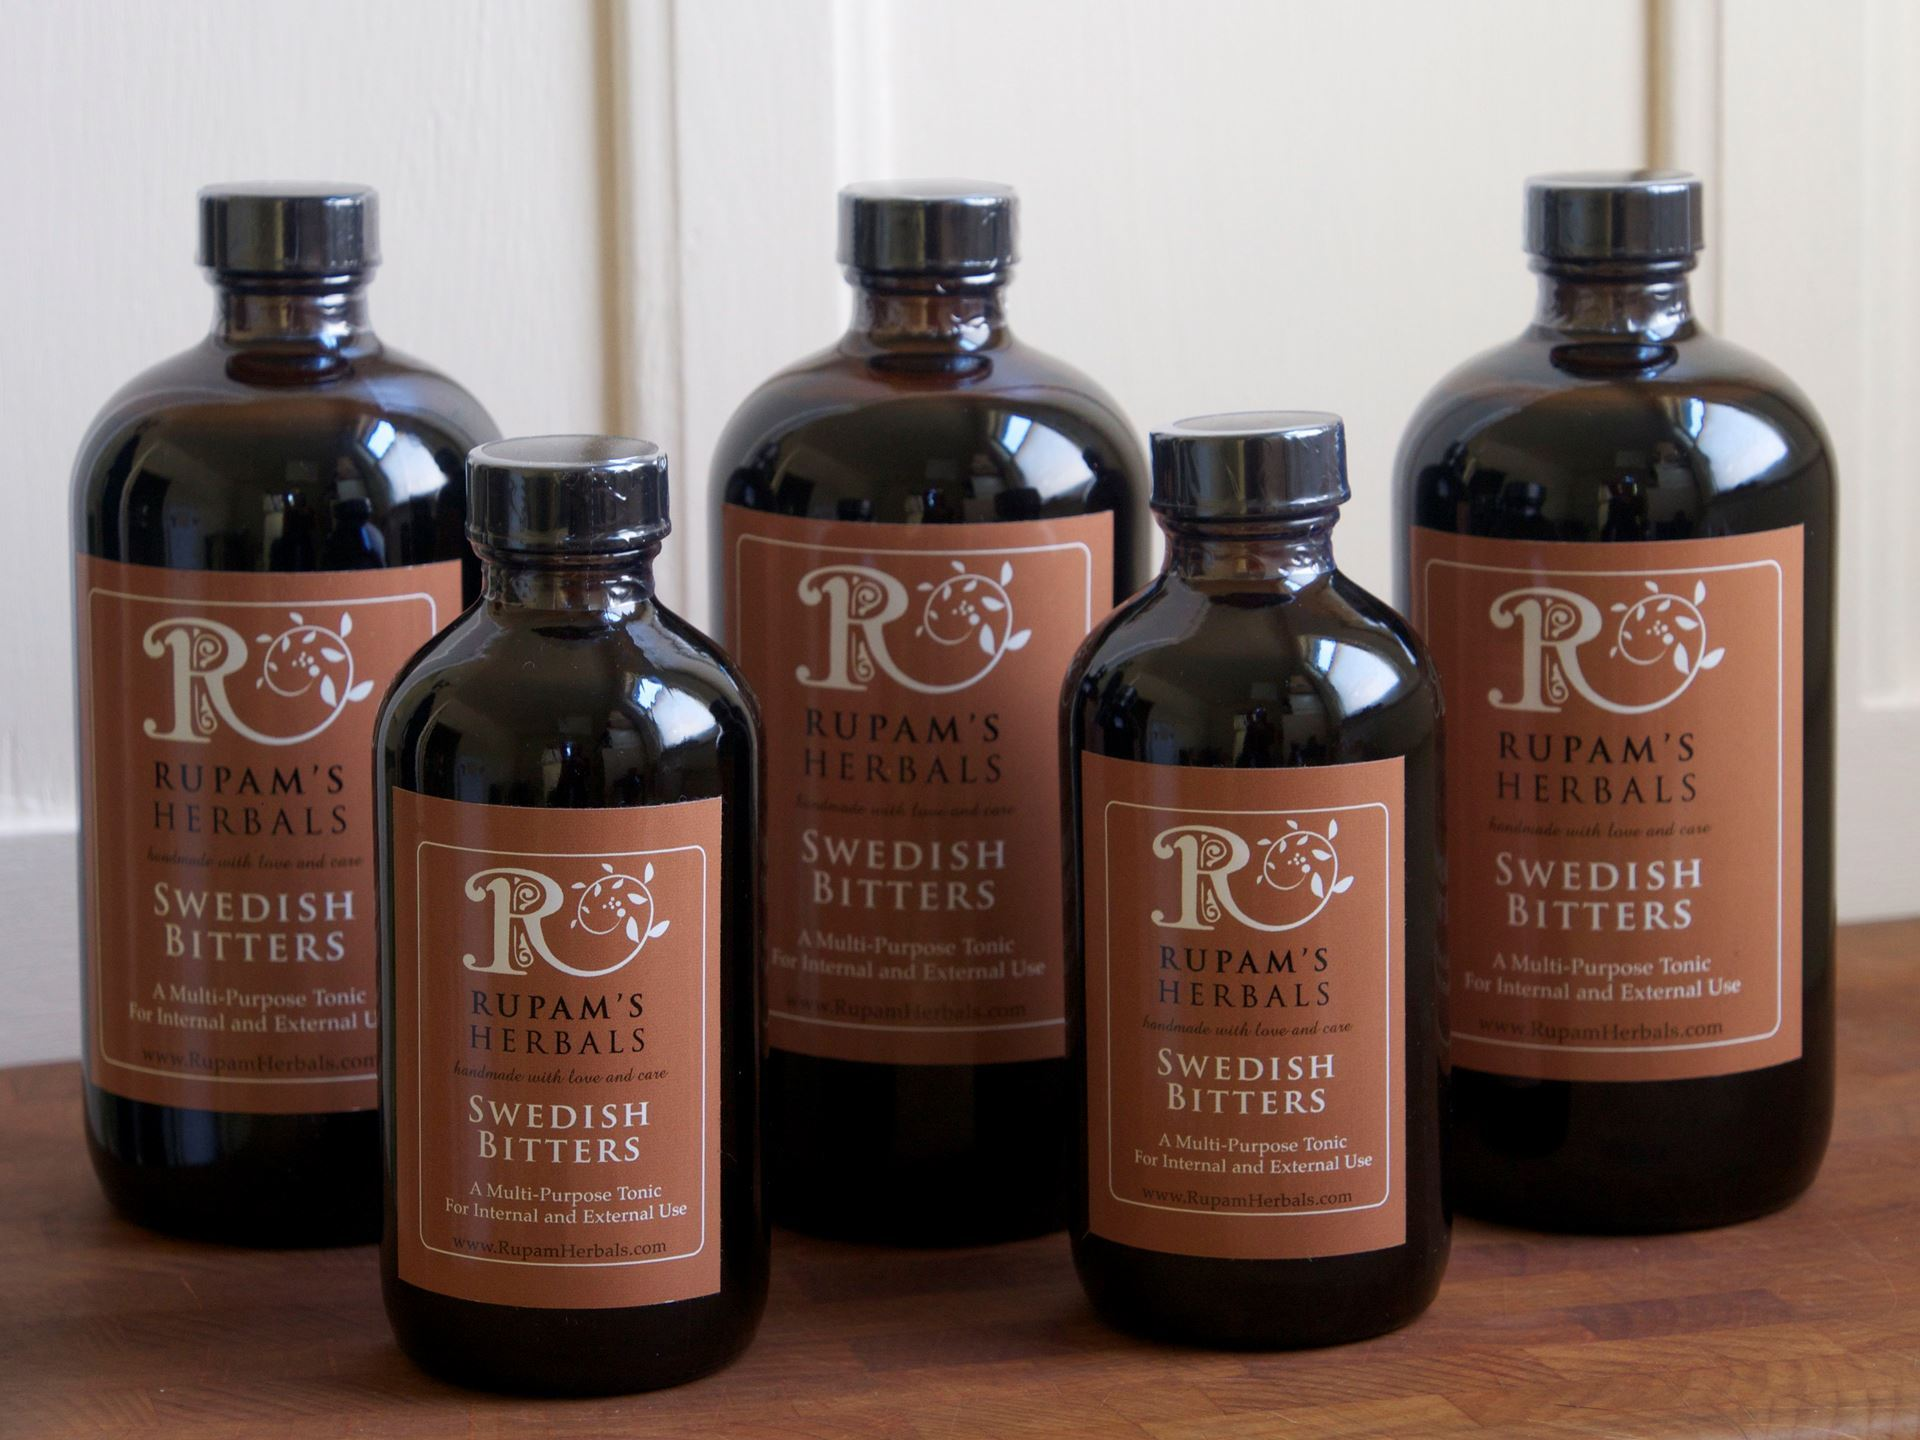 Picture of Rupam's Herbals Swedish Bitters 8 oz.